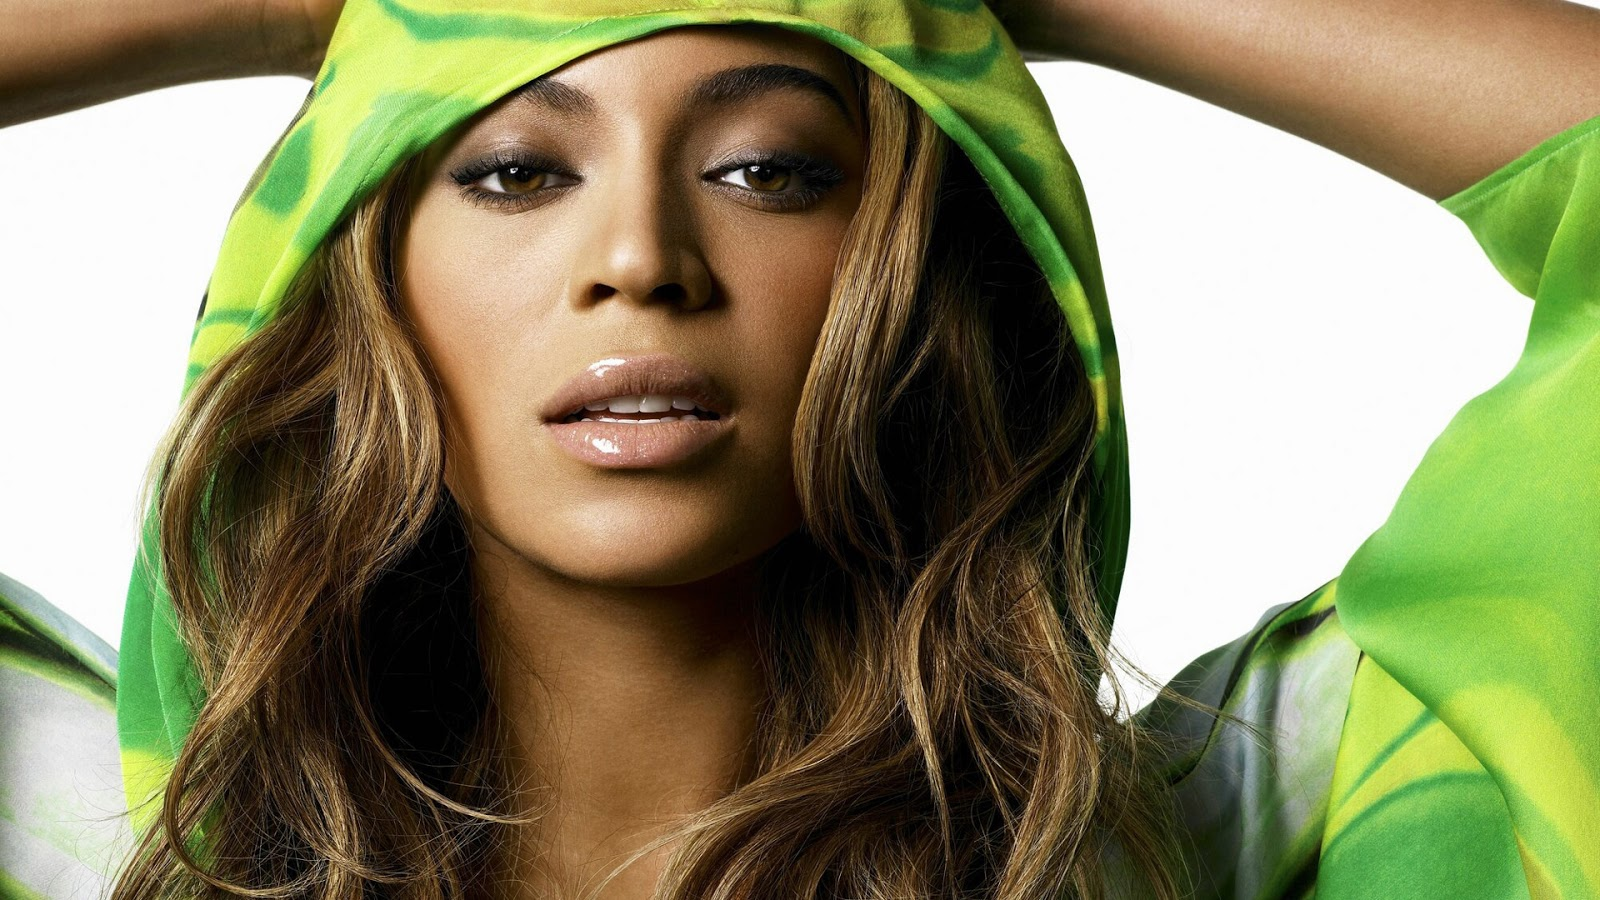 New Amazing Beyonce Knowles  hd wallpaper Wallpaper